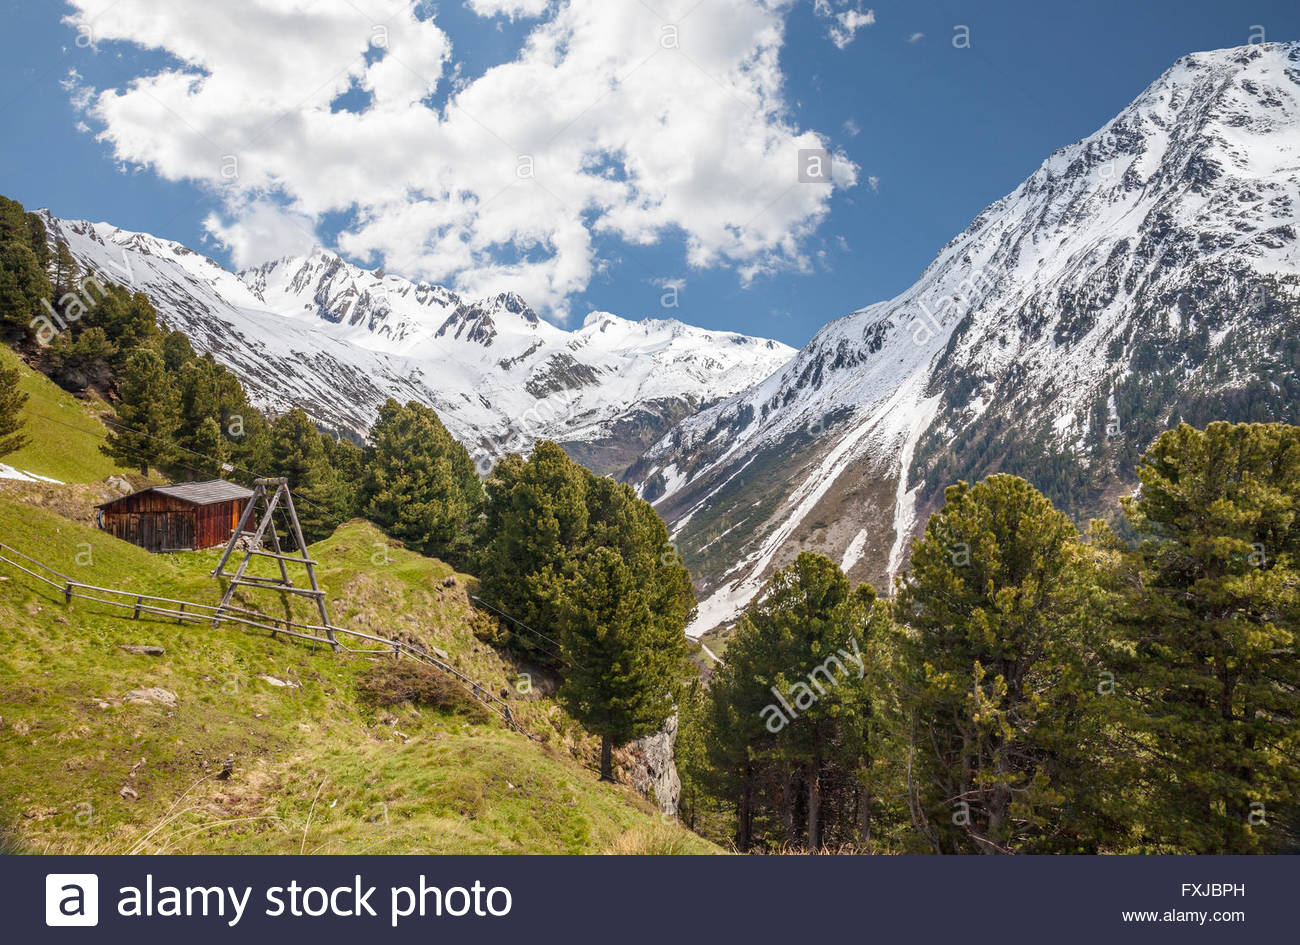 Alp in Riva di Tures, Campo Tures, South Tyrol, Italy - Stock Image